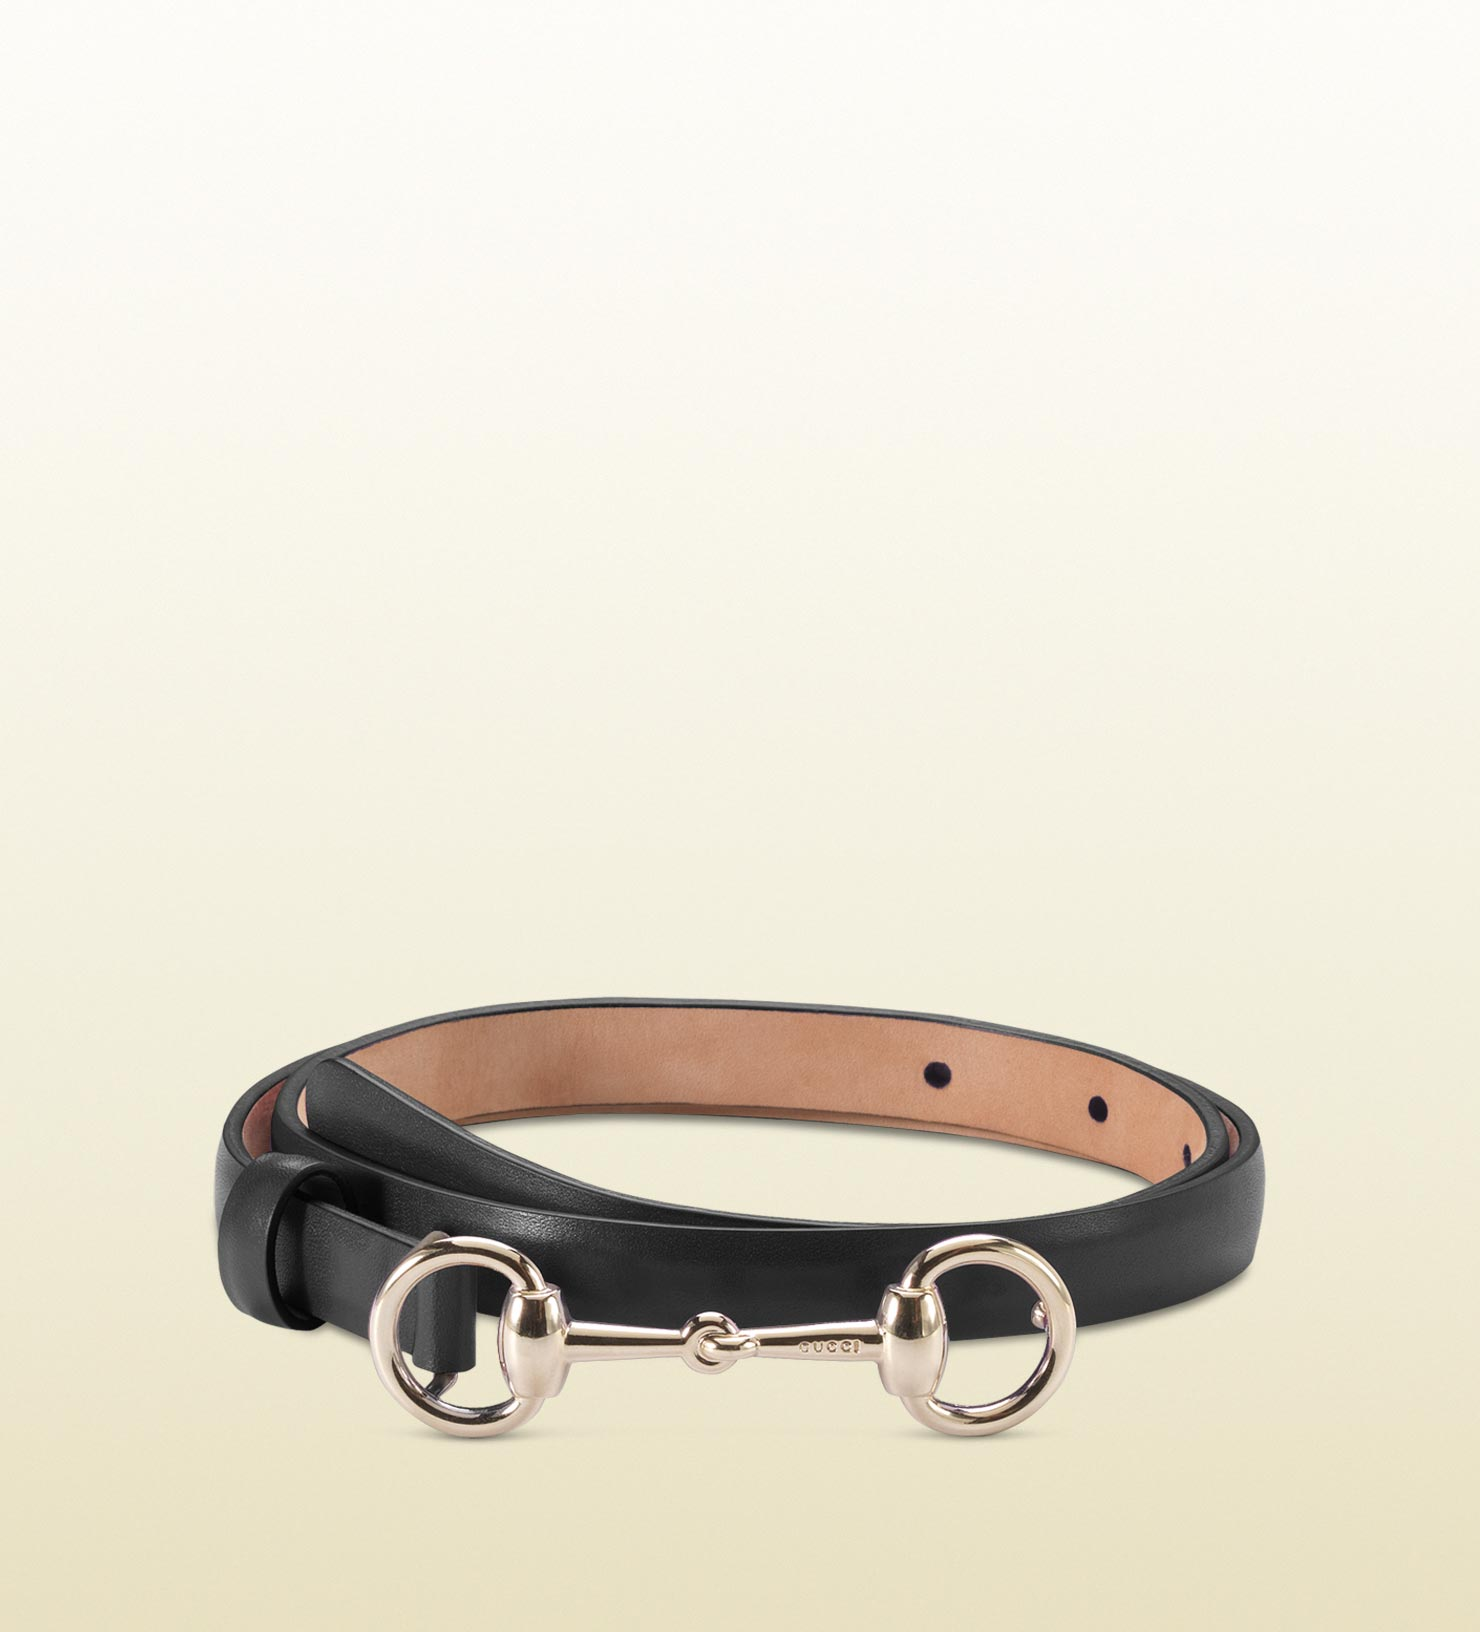 c1763b044bd Lyst - Gucci Leather Skinny Belt With Horsebit Buckle in Black